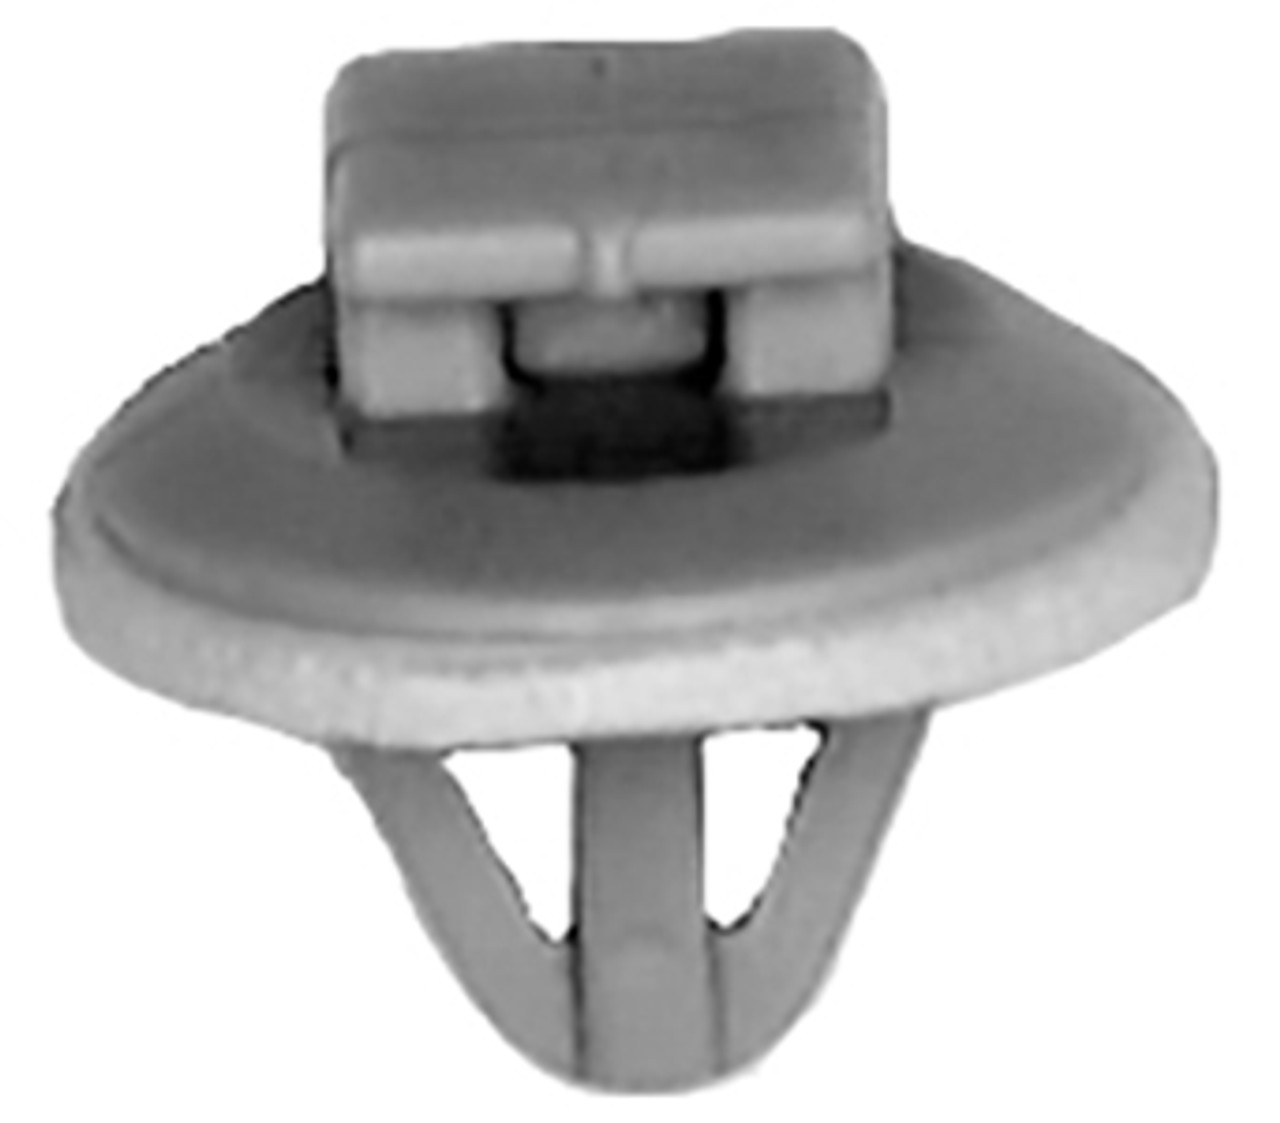 Door Mopulding Clip With Sealer Head Diameter: 15mm Stem Length: 9mm Fits Into 8mm Hole Toyota Avalon & Corolla 1998-On OEM# 90467-10077 Butterscotch Nylon 15 Per Box Click Next Image For Clip Detail